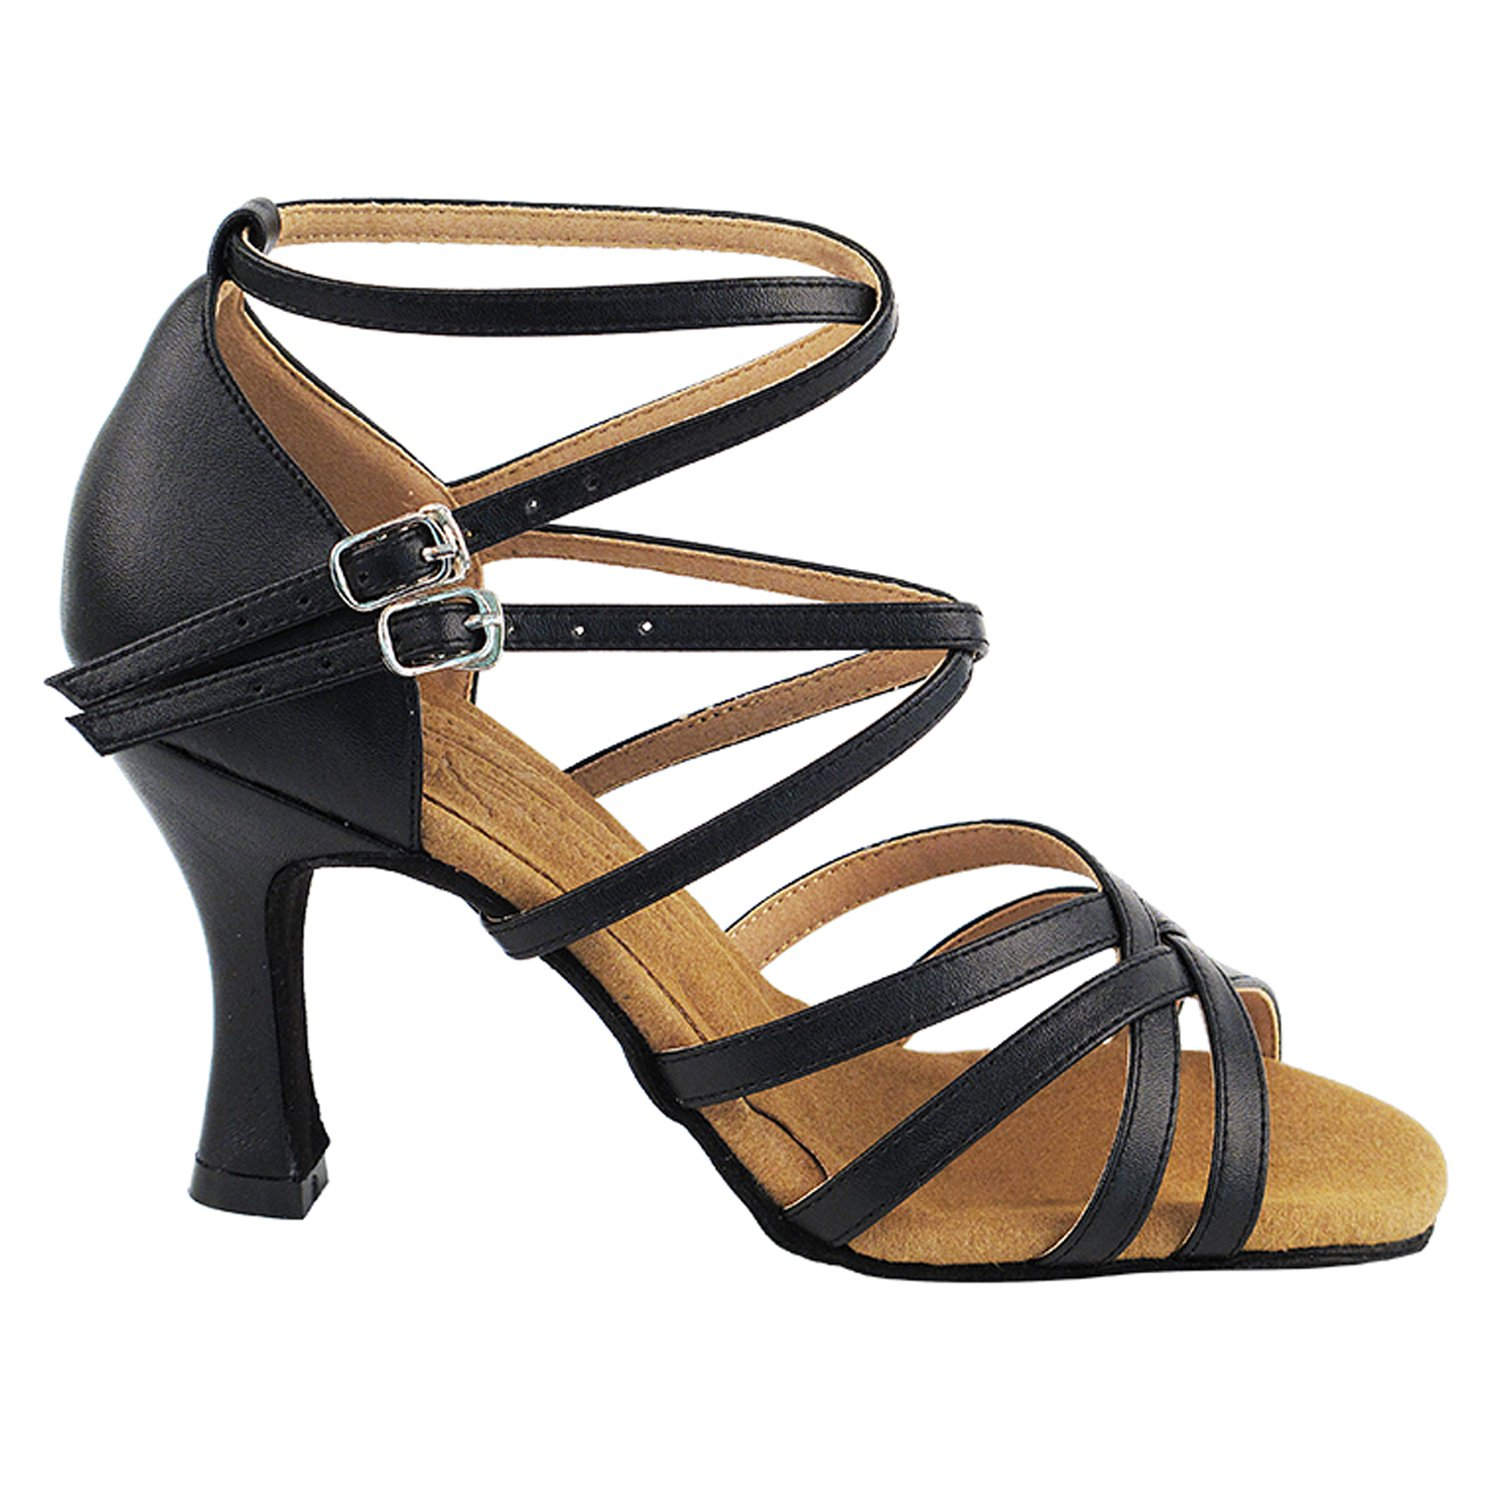 50 Shades Black Ballroom Salsa Latin Dance Shoes for Women